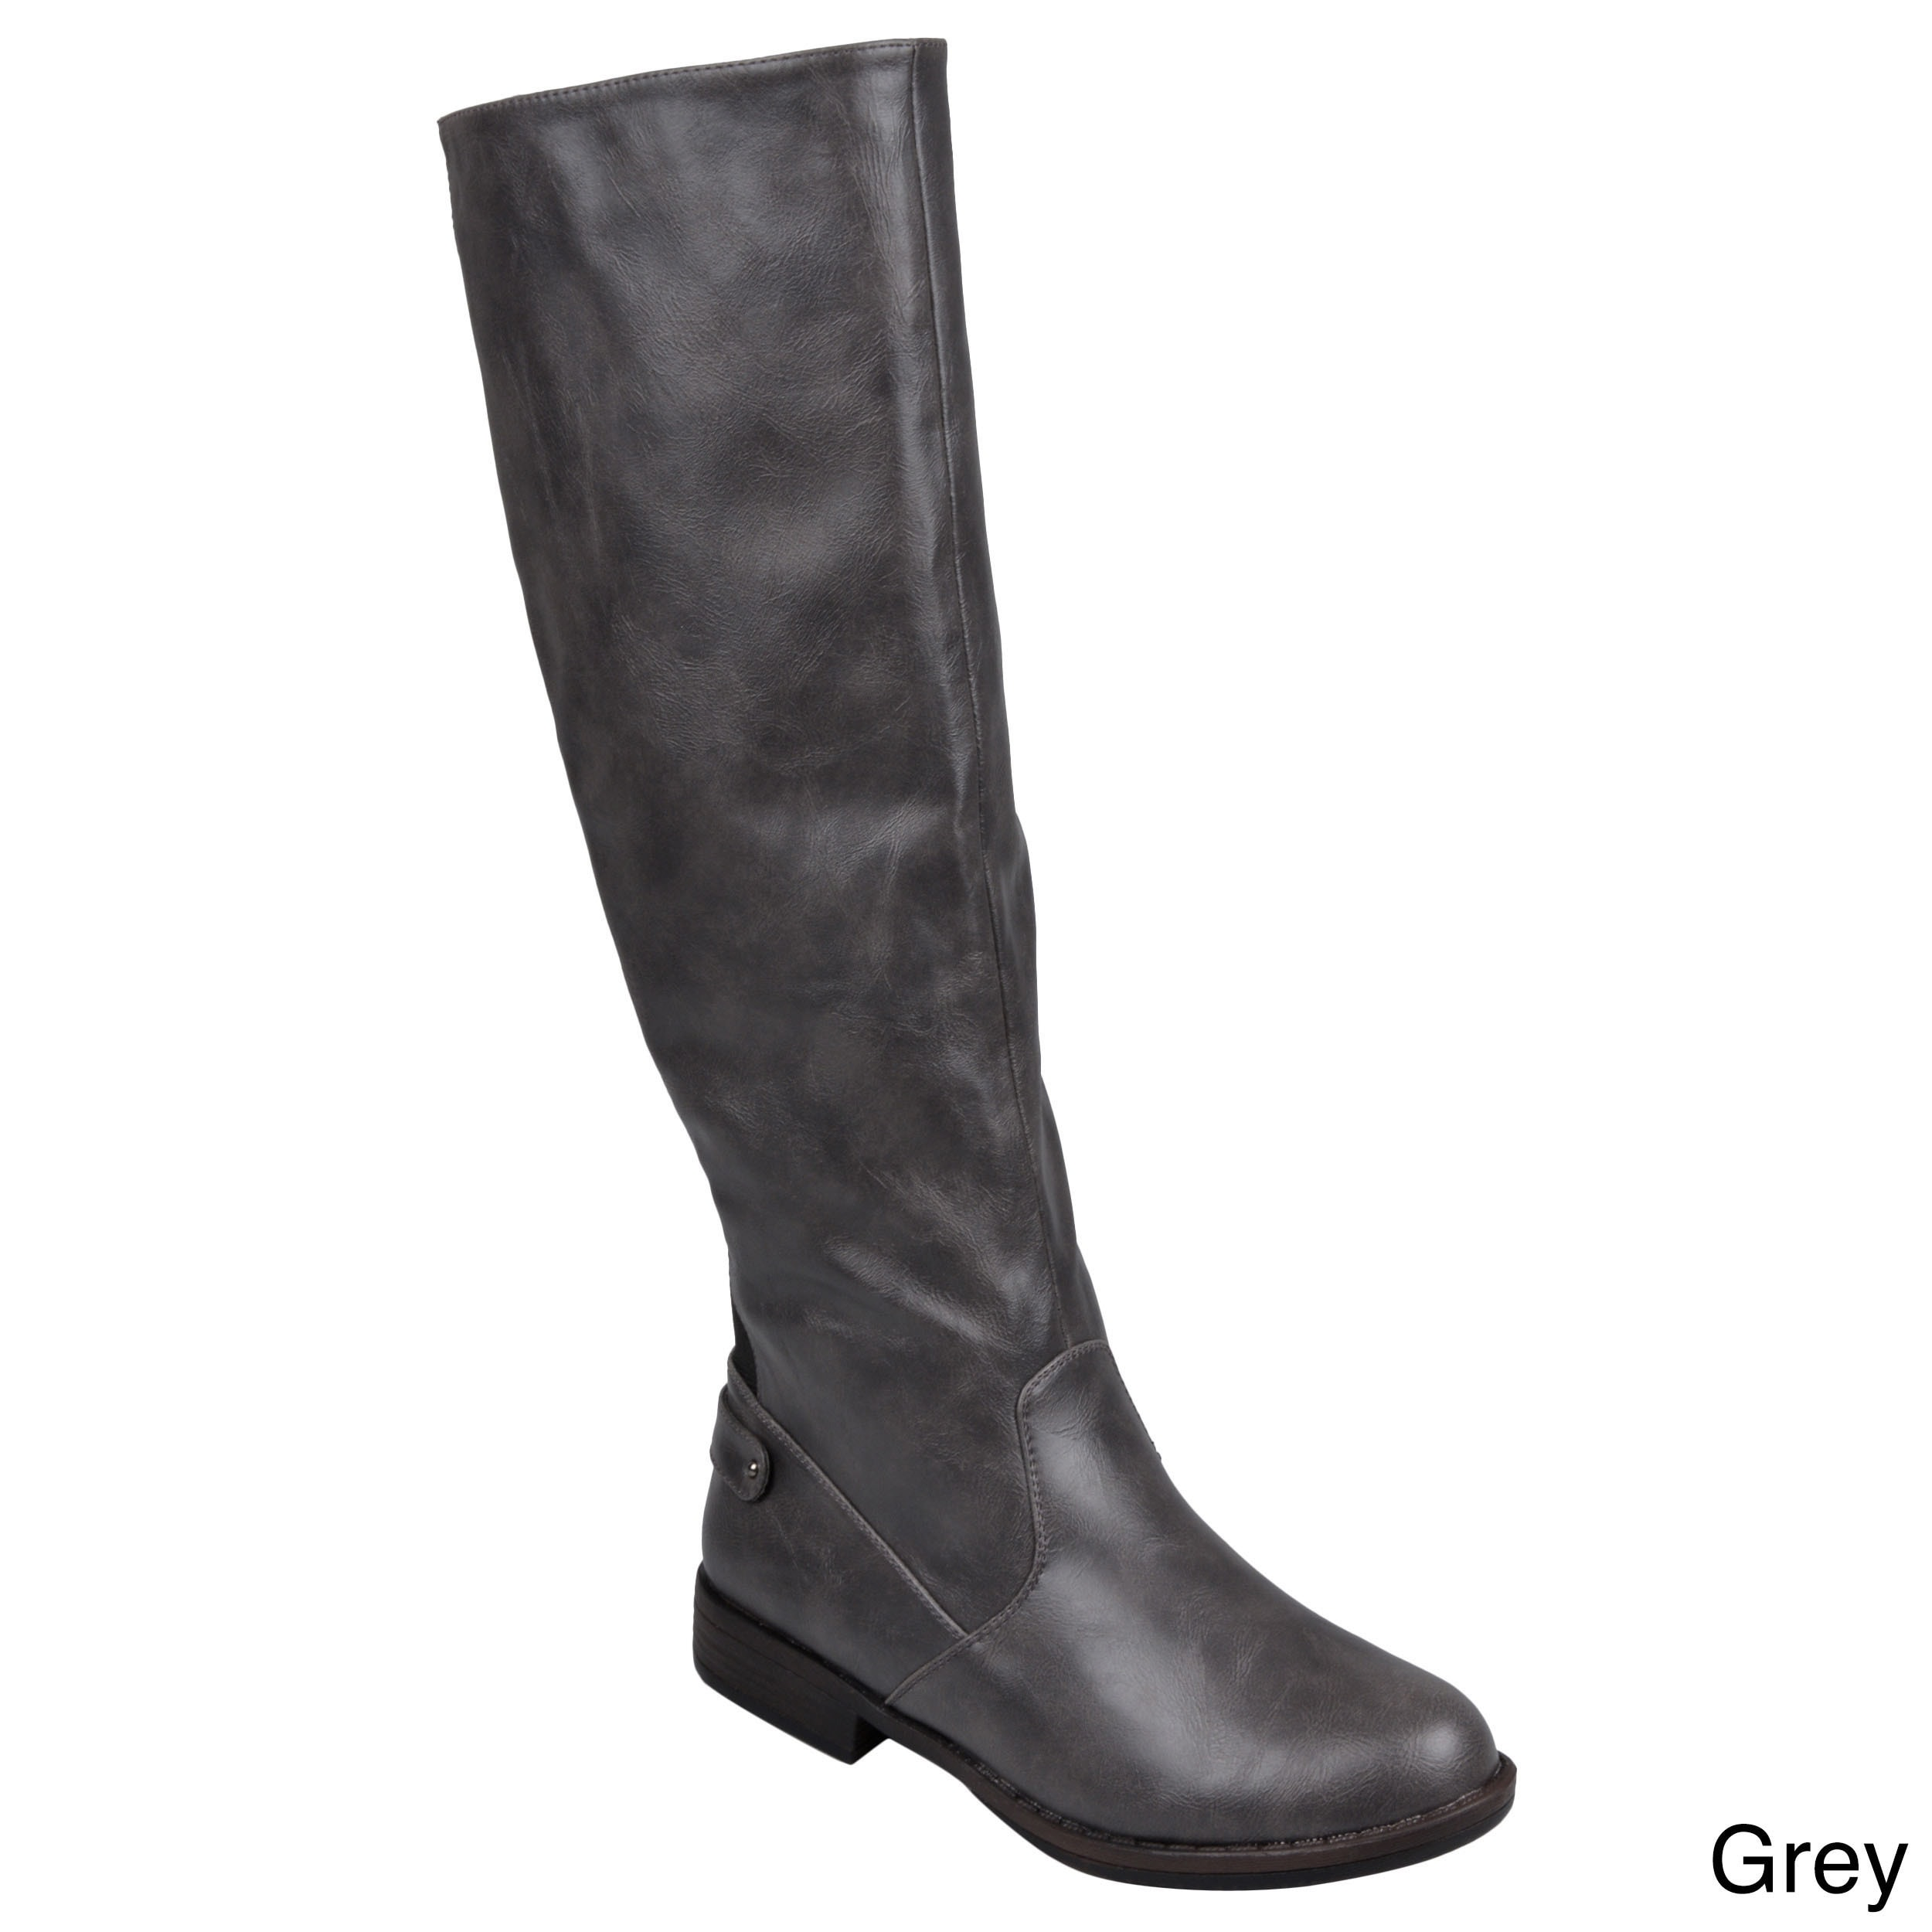 086d228afe7 Shop Journee Collection Women s  Lynn  Riding Boot - Free Shipping Today -  Overstock - 8342911